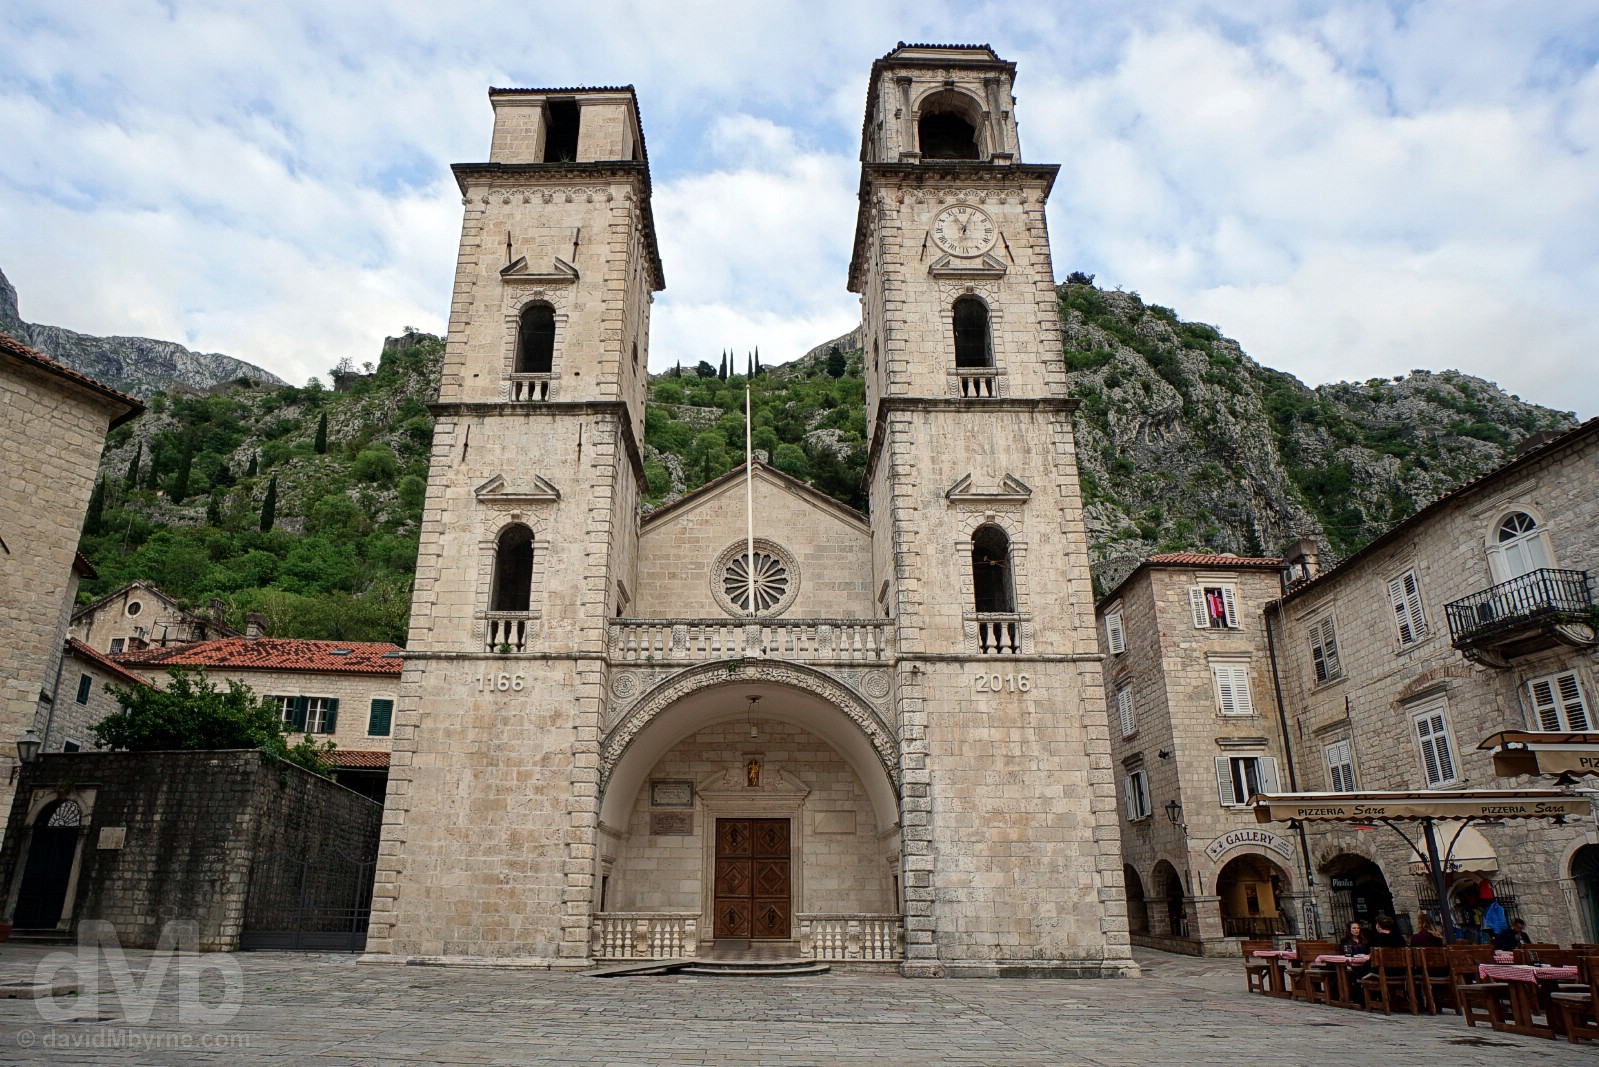 The Cathedral of St. Tryphon, Trg sv. Tripuna (St. Tryphon's Square), Stari Grad (Old Town), Kotor, Montenegro. April 19, 2017.